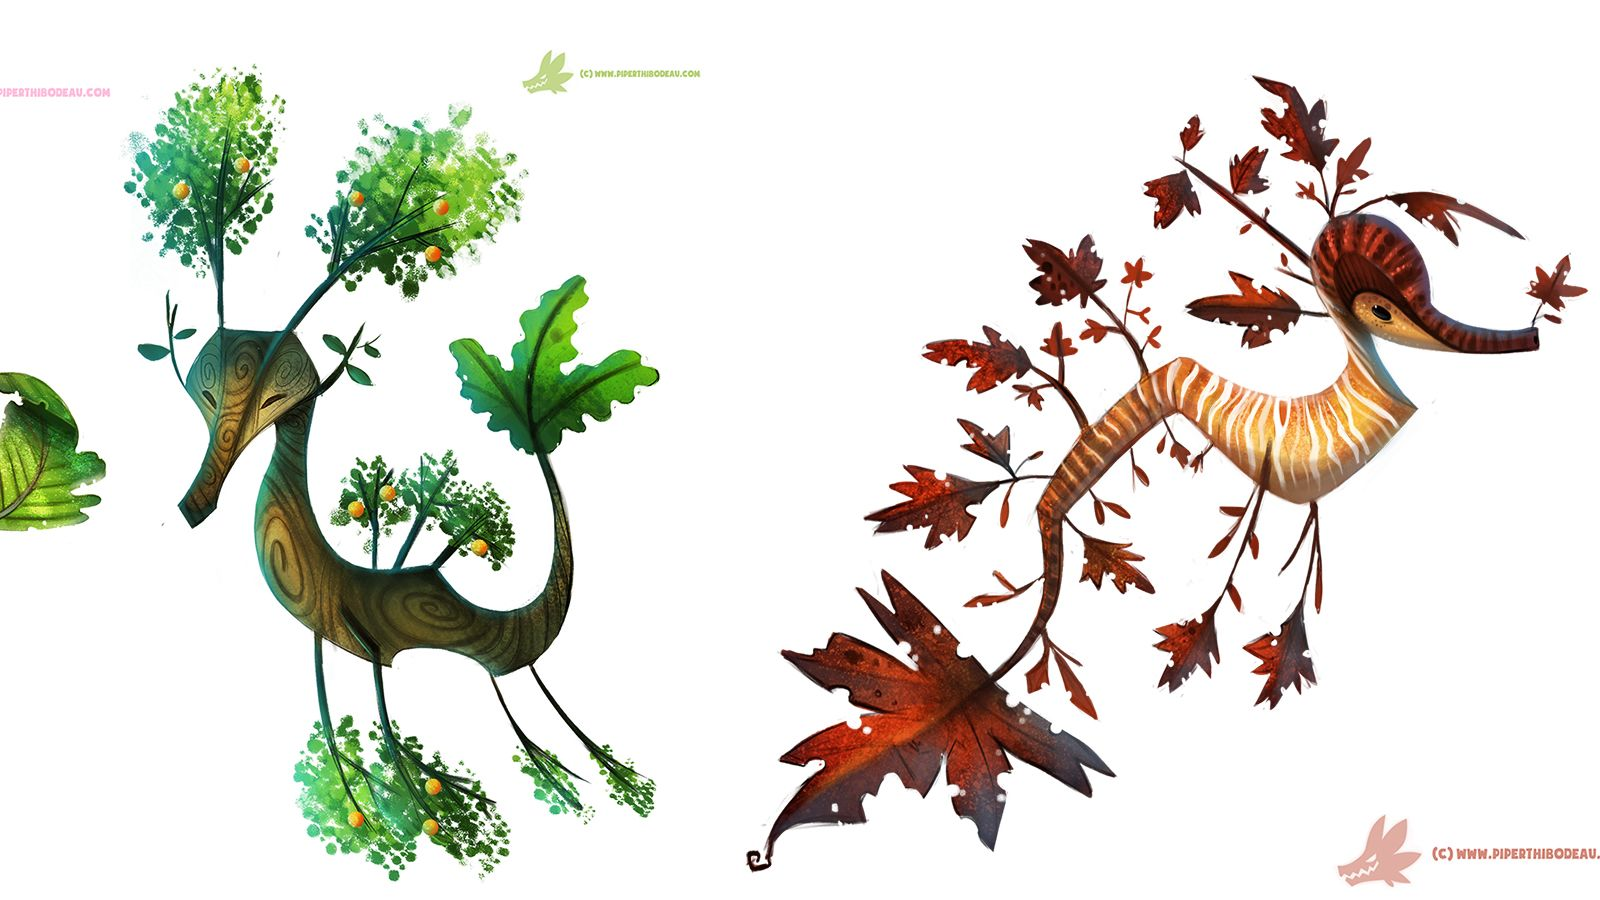 Leafy Seadragon clipart #7, Download drawings